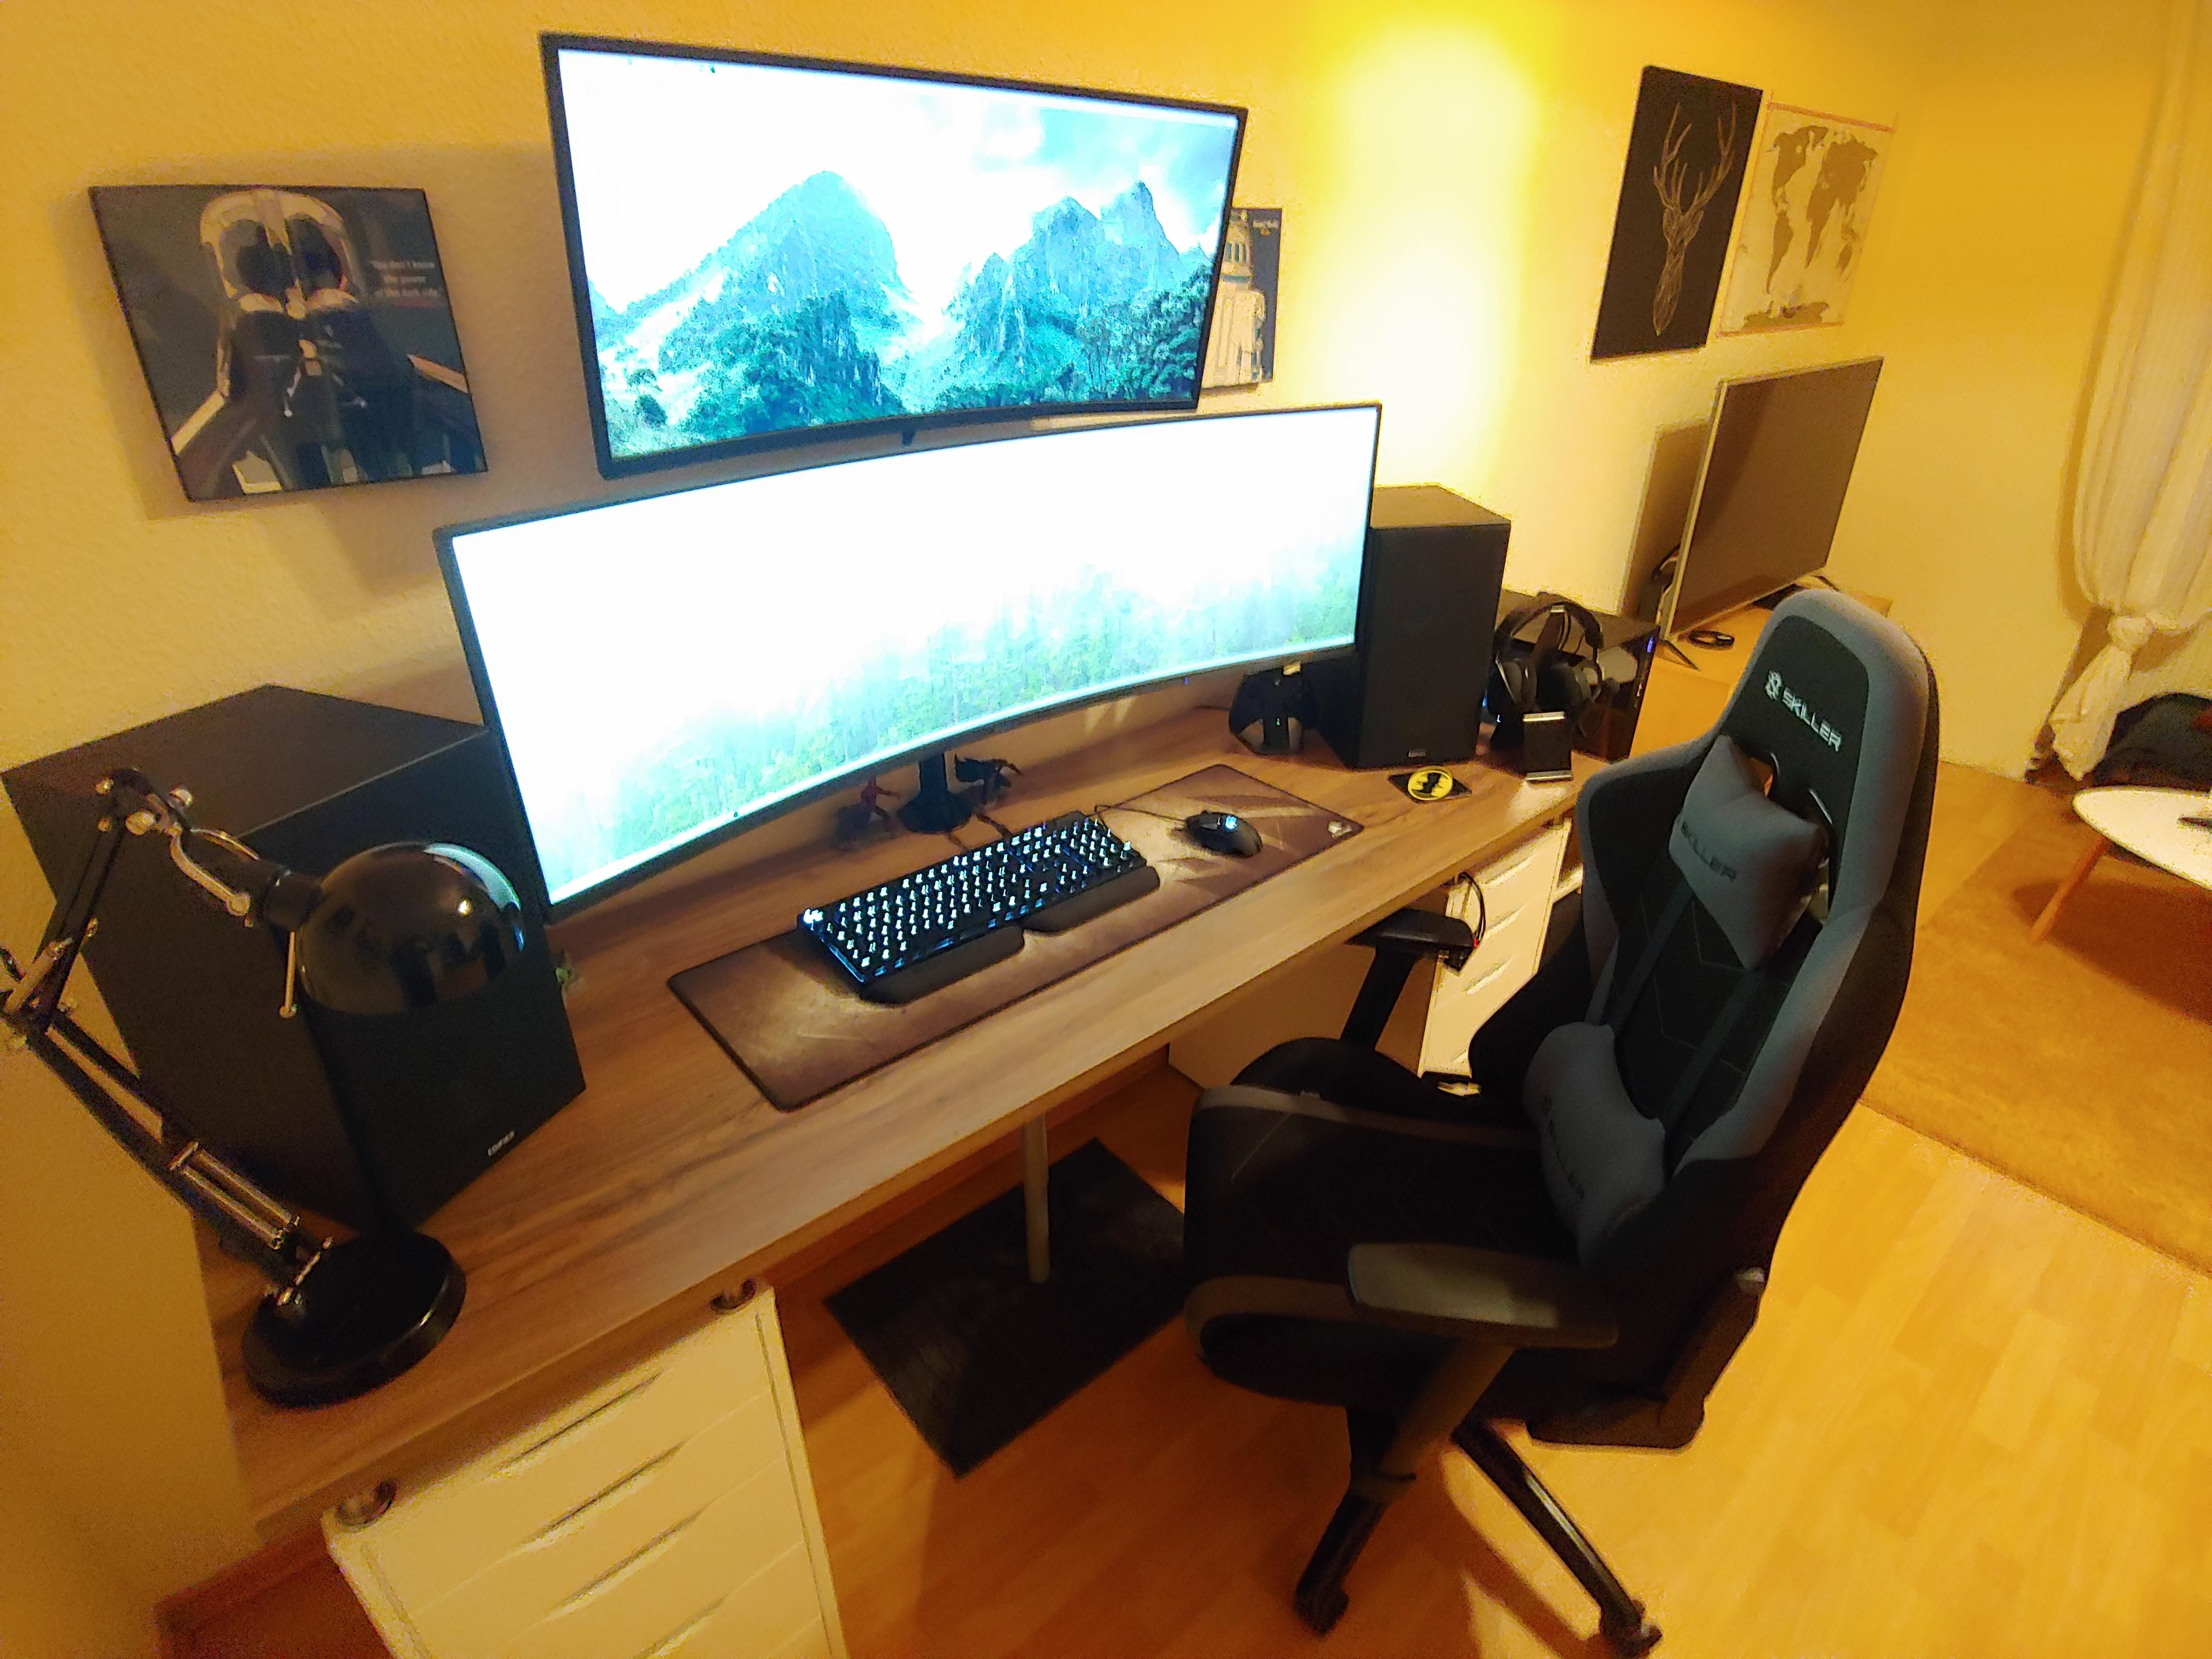 2020 Battlestation is ready to go can't wait for Cyberpunk